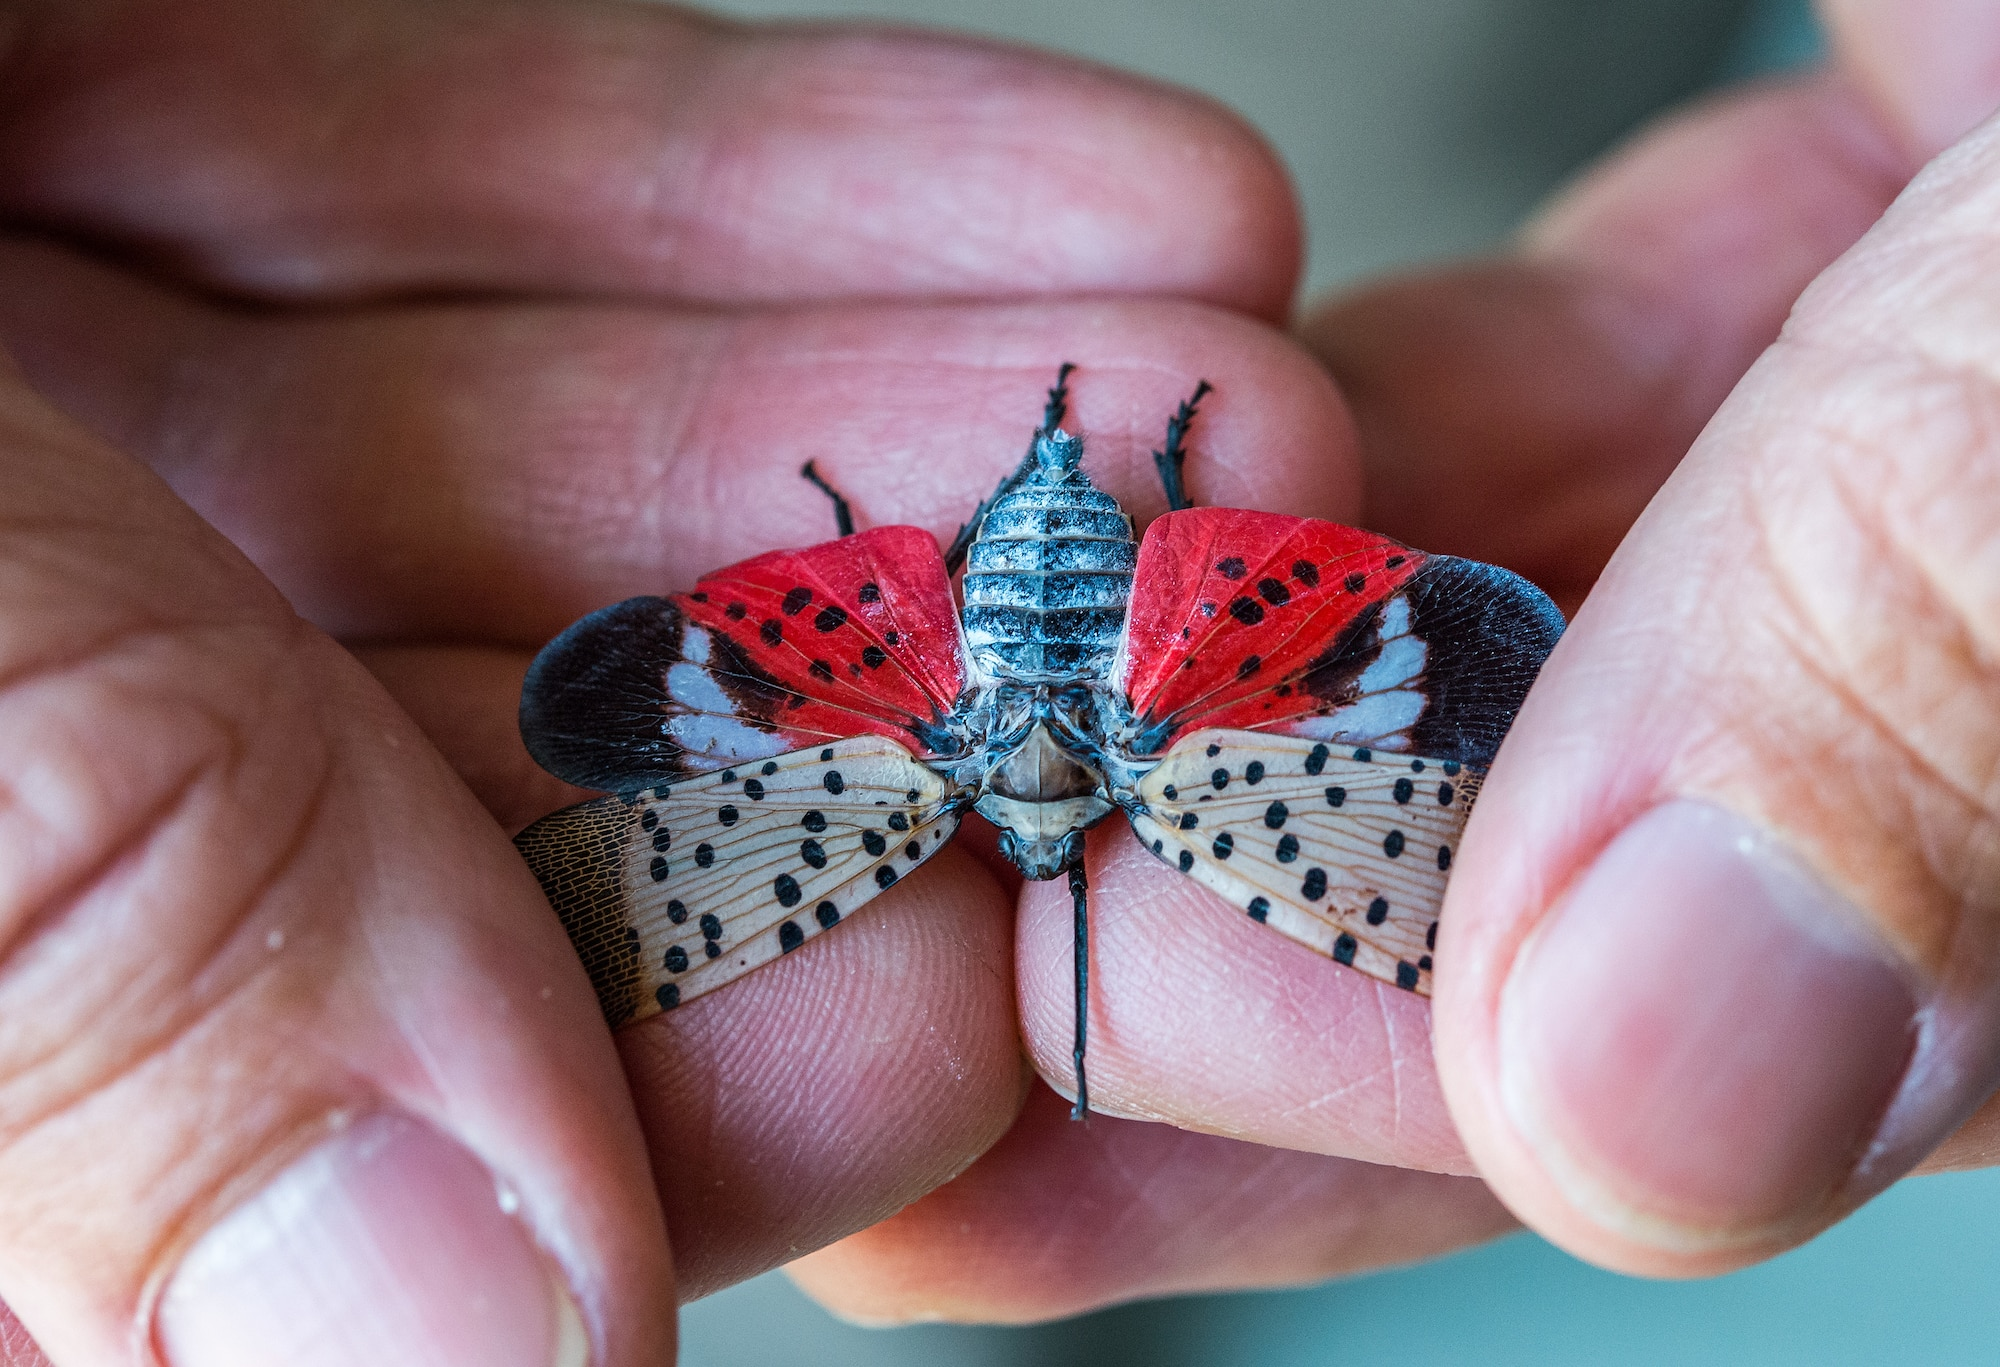 """Dr. Phil Lewis, U.S. Department of Agriculture, Forest Pest Method Lab, holds a Spotted Lanternfly at Dover Air Force Base, Delaware, Aug. 24, 2021. The """"hitchhiker"""" insects is believed to have made their way from Asia aboard shipping vessels. They attach themselves and lay eggs on objects which then causes disbursement around the world. (U.S. Air Force photo by Roland Balik)"""